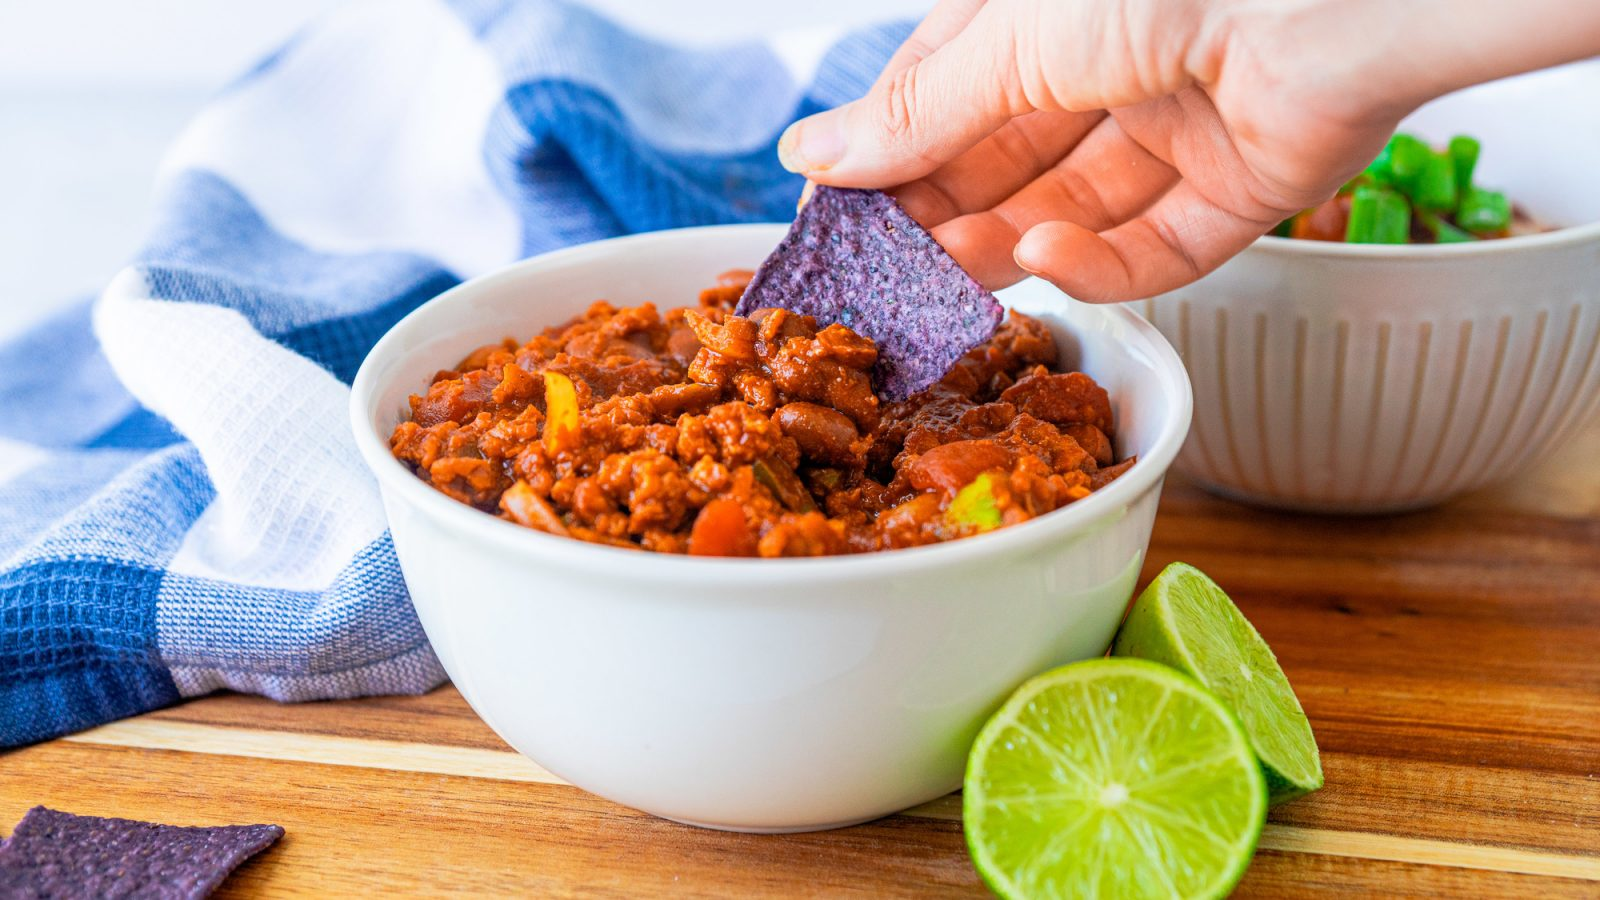 tortilla chip being dunked into vegan chili